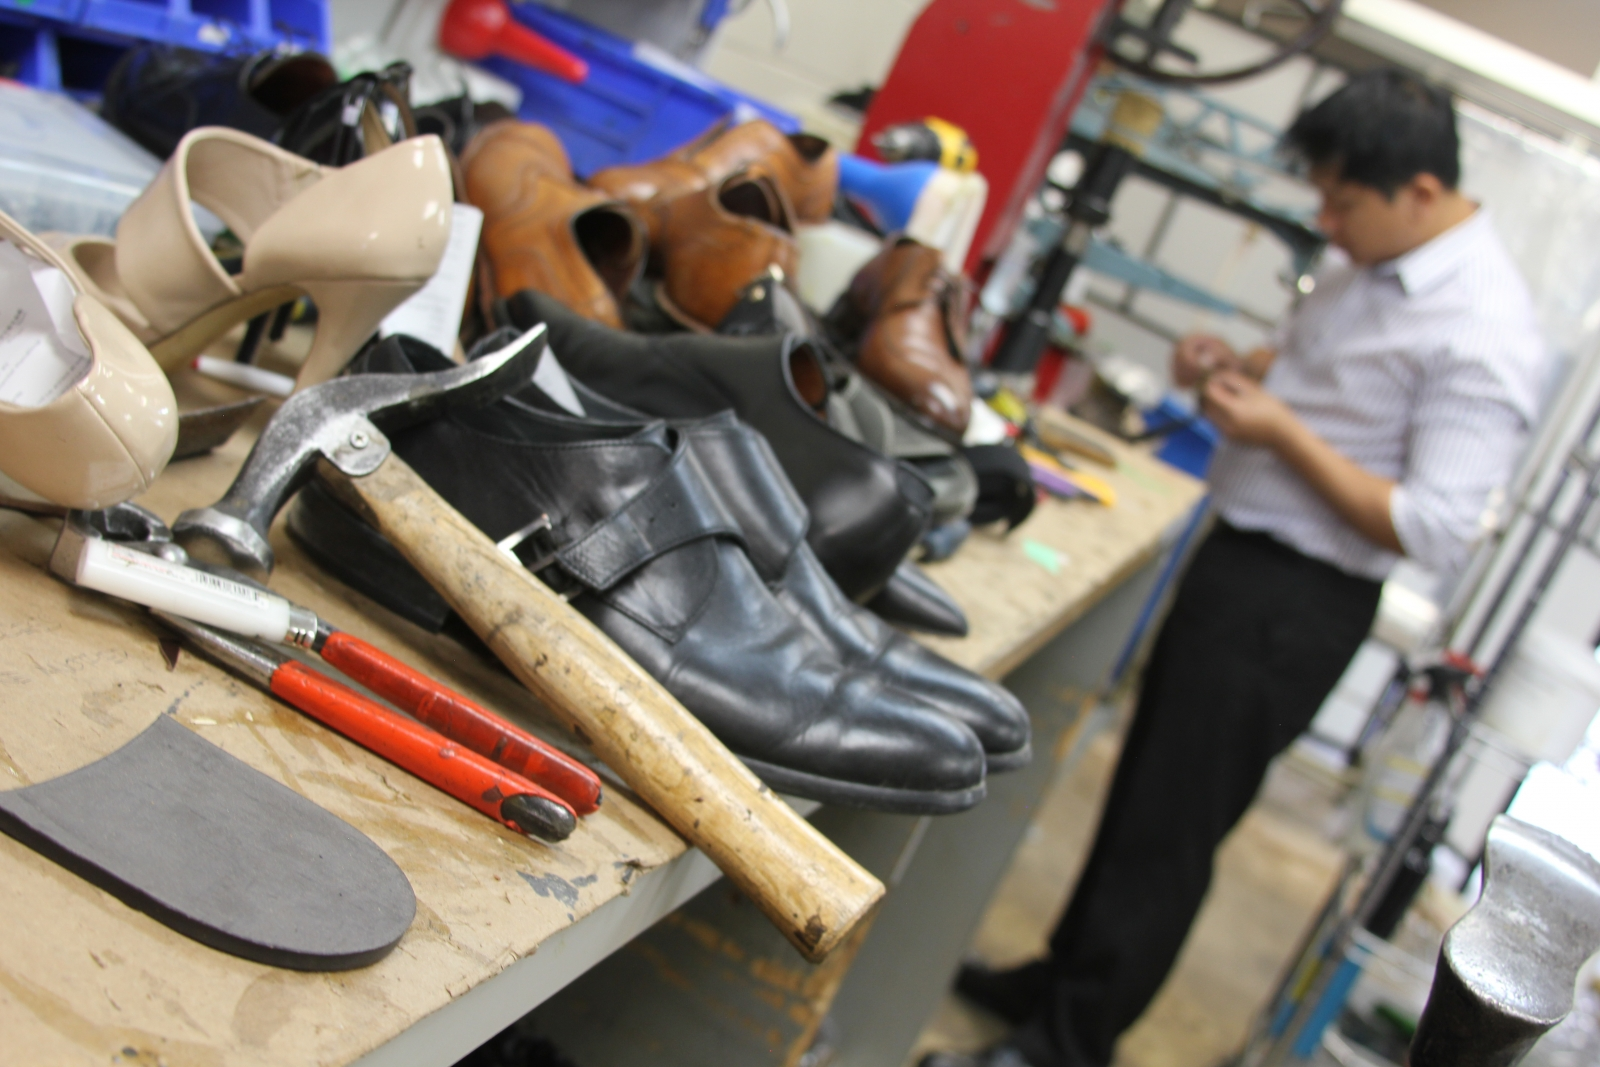 Tools of the trade are placed next to rows of shoes awaiting repair.